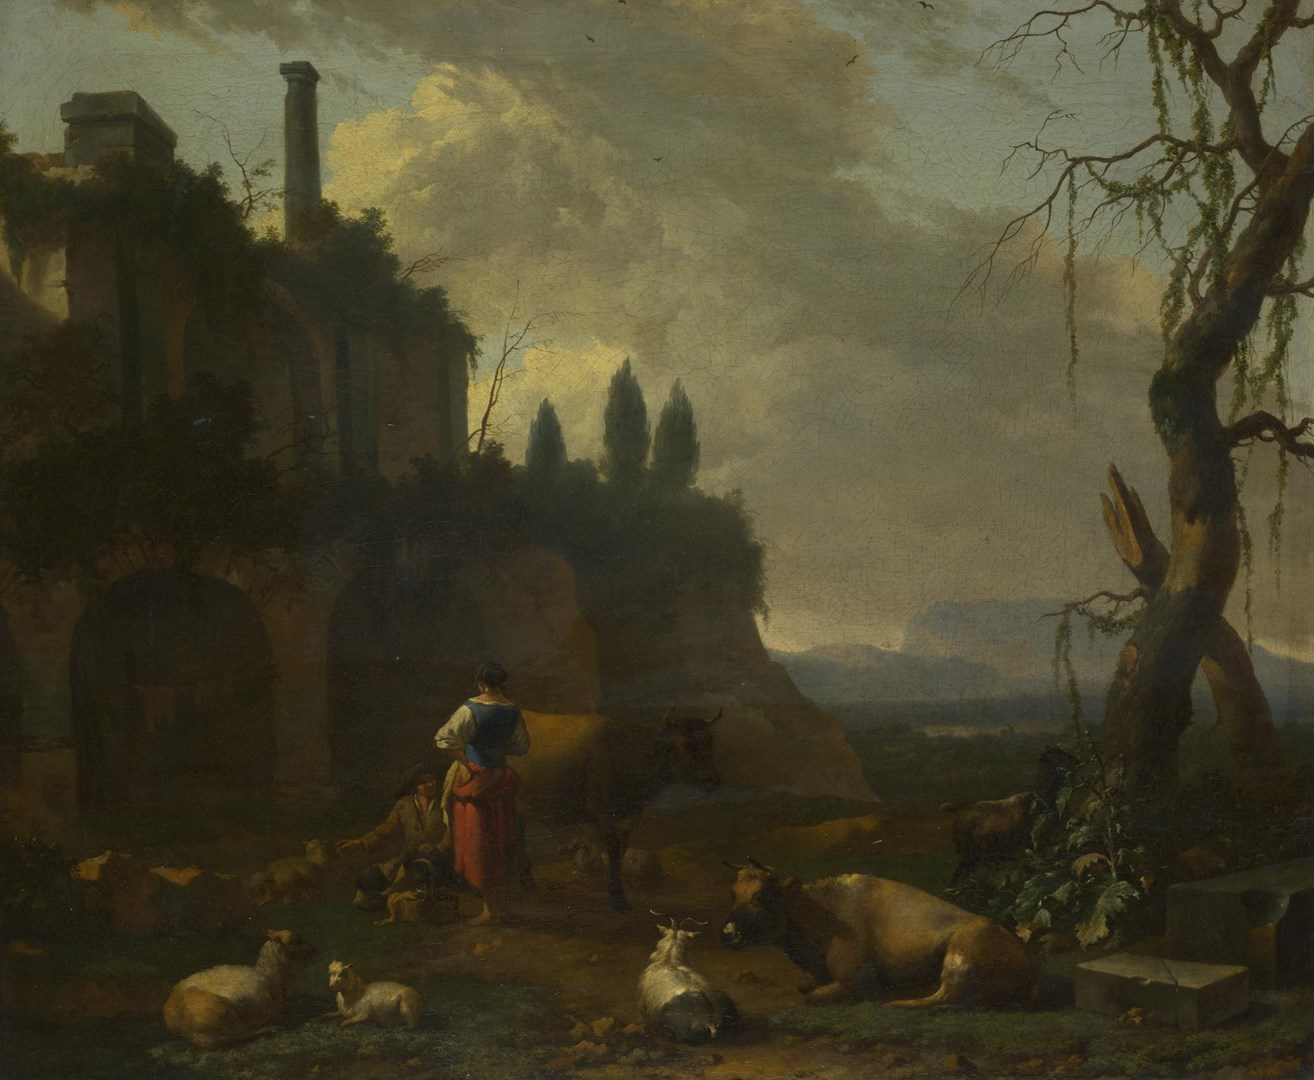 Peasants with Cattle by a Ruin by Abraham Begeijn